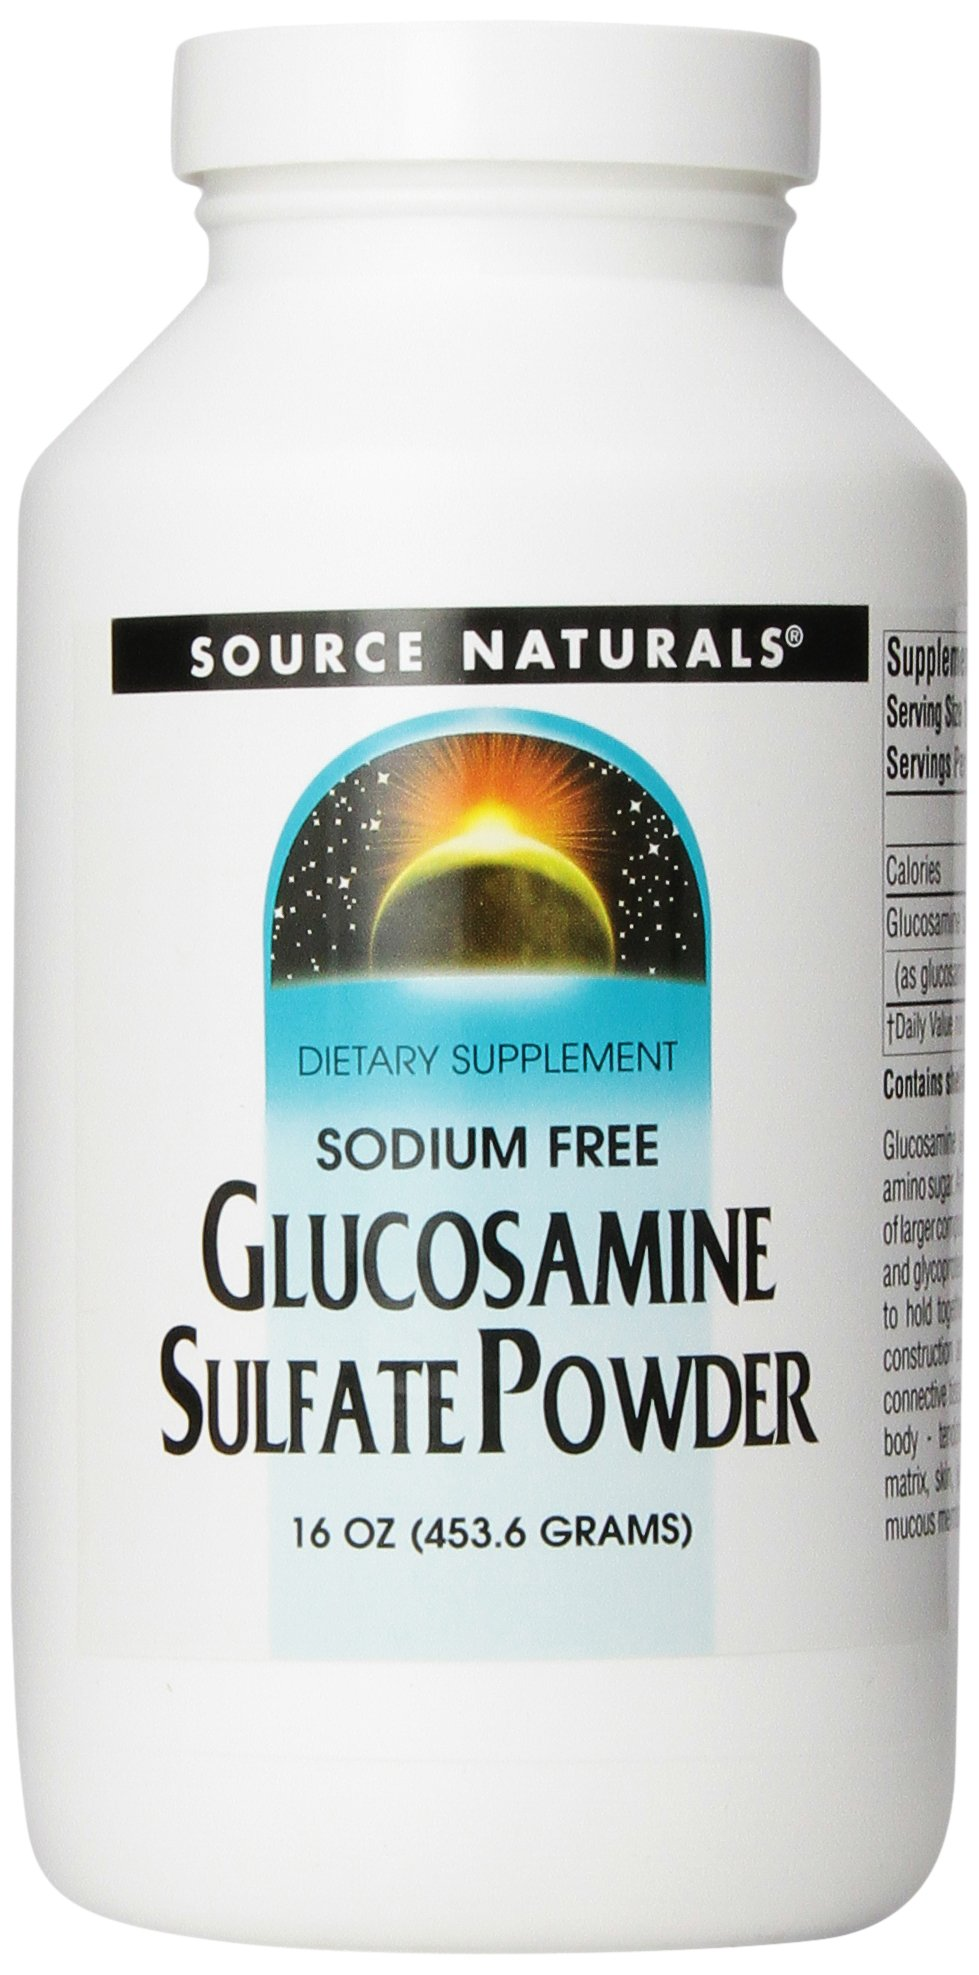 Source Naturals Glucosamine Sulfate Powder, The Nutritional Building Block of Healthy Cartilage, 16 Ounces by Source Naturals